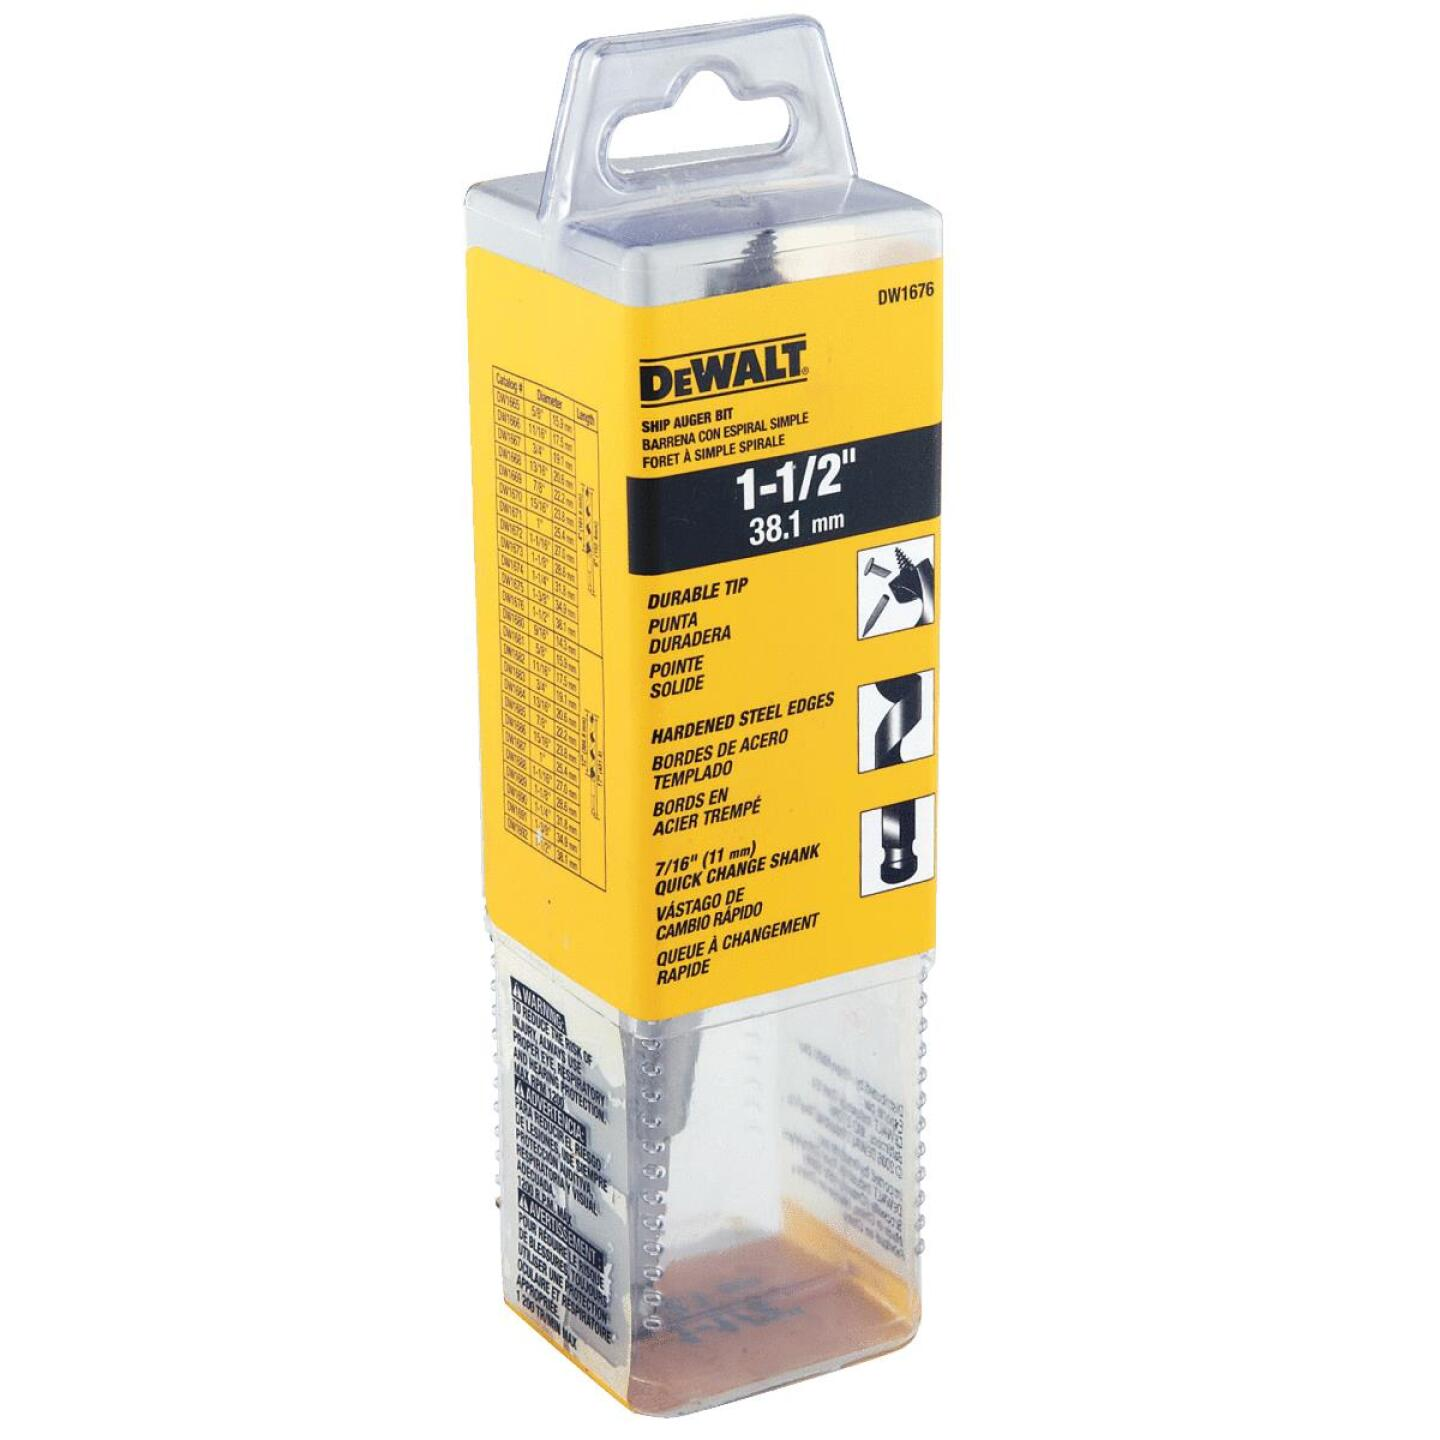 DeWalt Power Ship 1-1/2 In. x 6 In. Quick Change Auger Bit Image 2